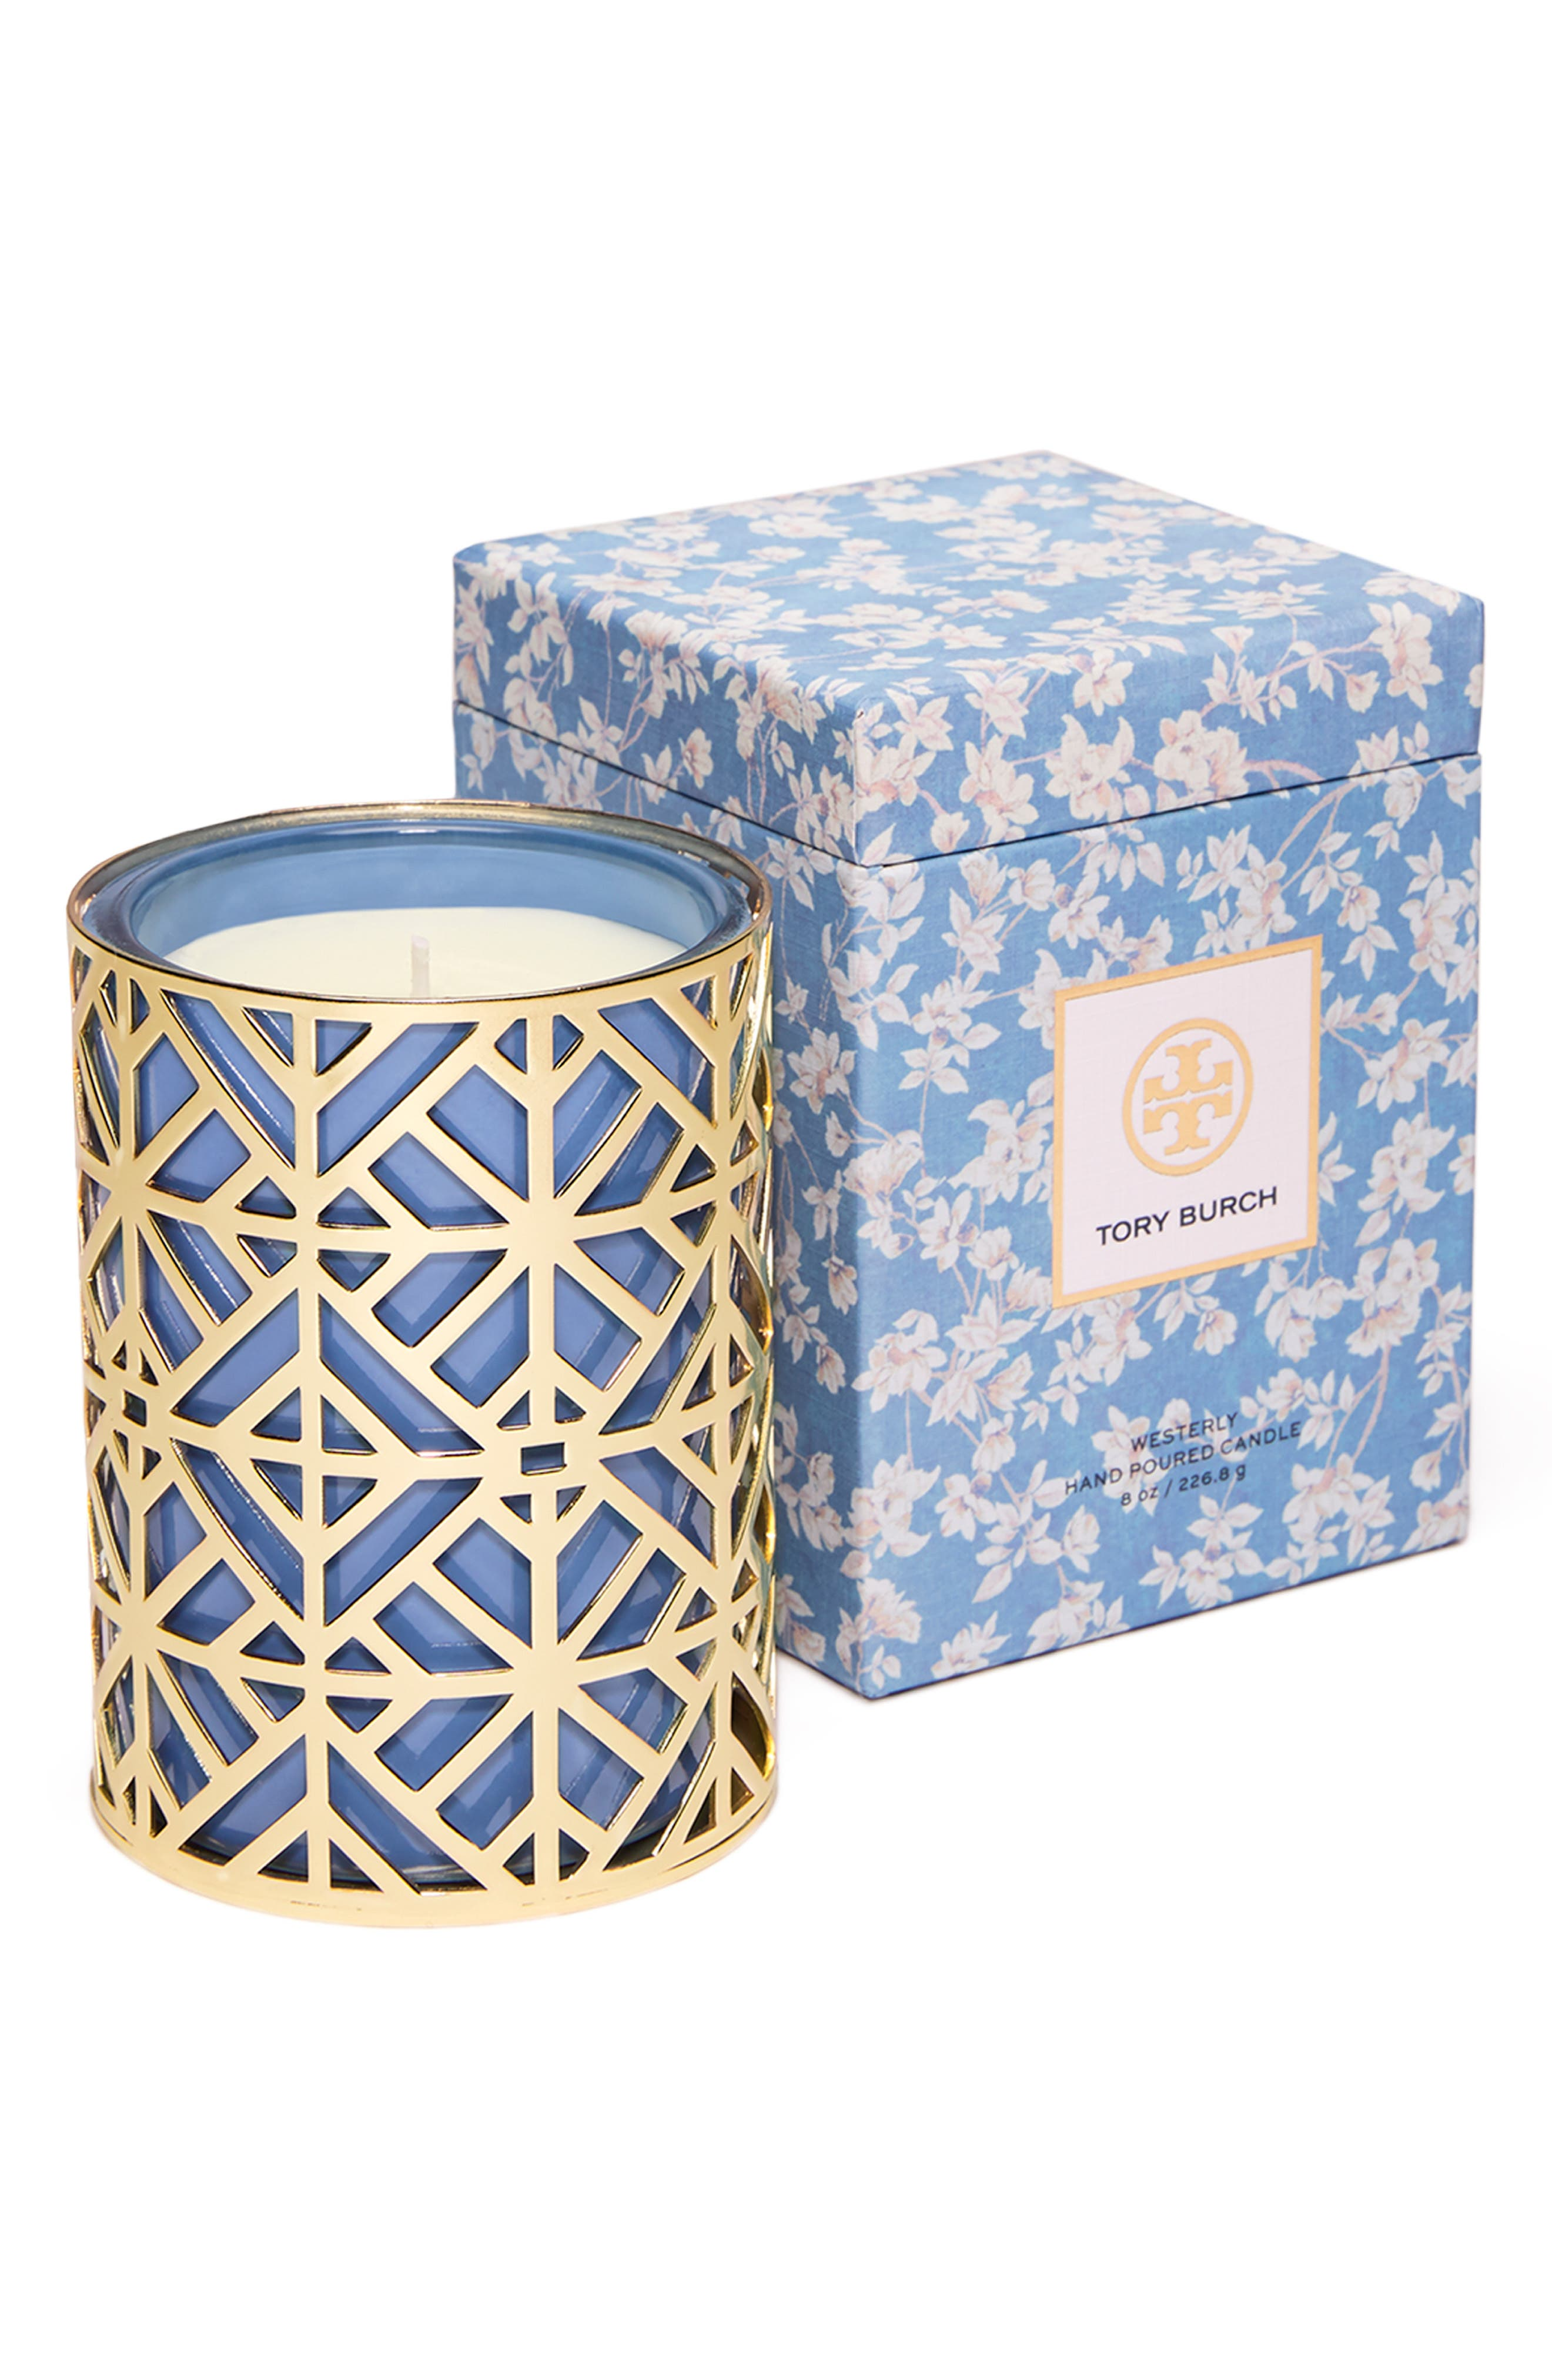 TORY BURCH, Westerley Candle, Main thumbnail 1, color, 400